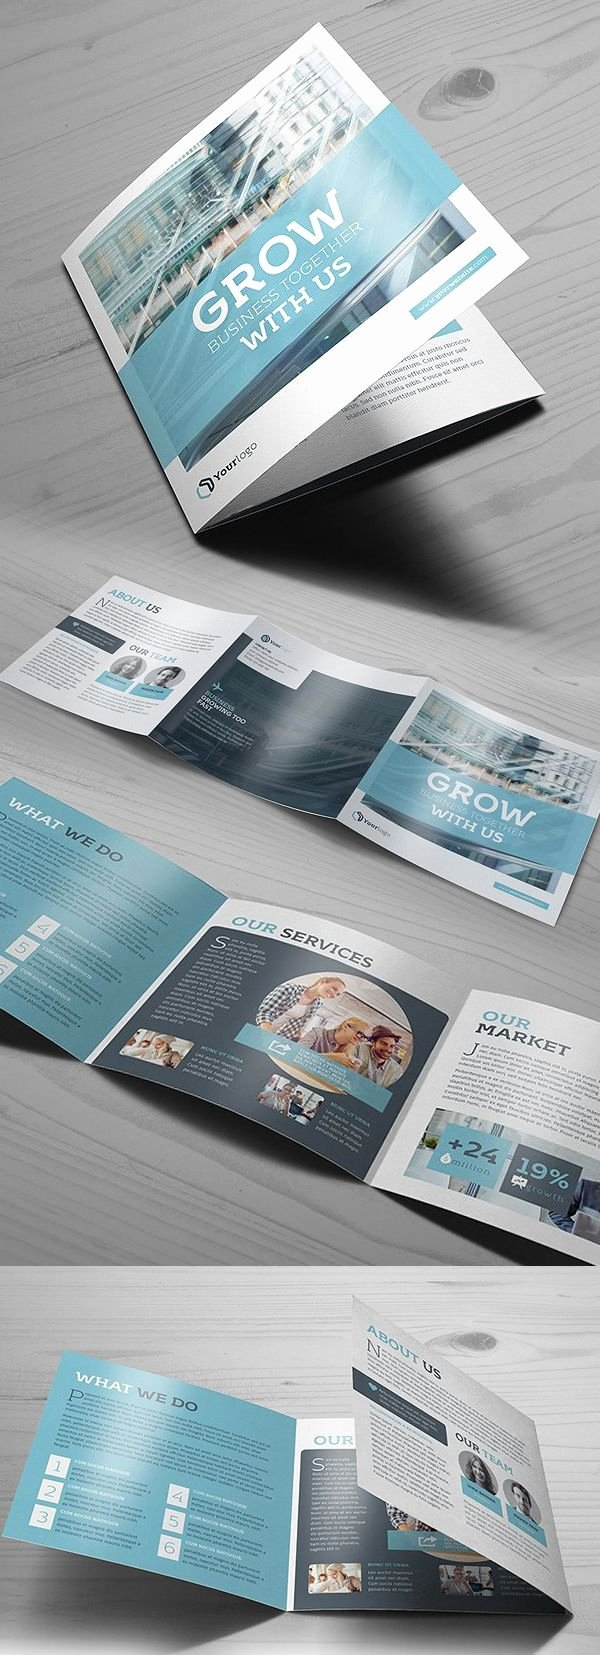 Square Trifold Brochure Template Fresh Best 25 Brochure Design Ideas On Pinterest